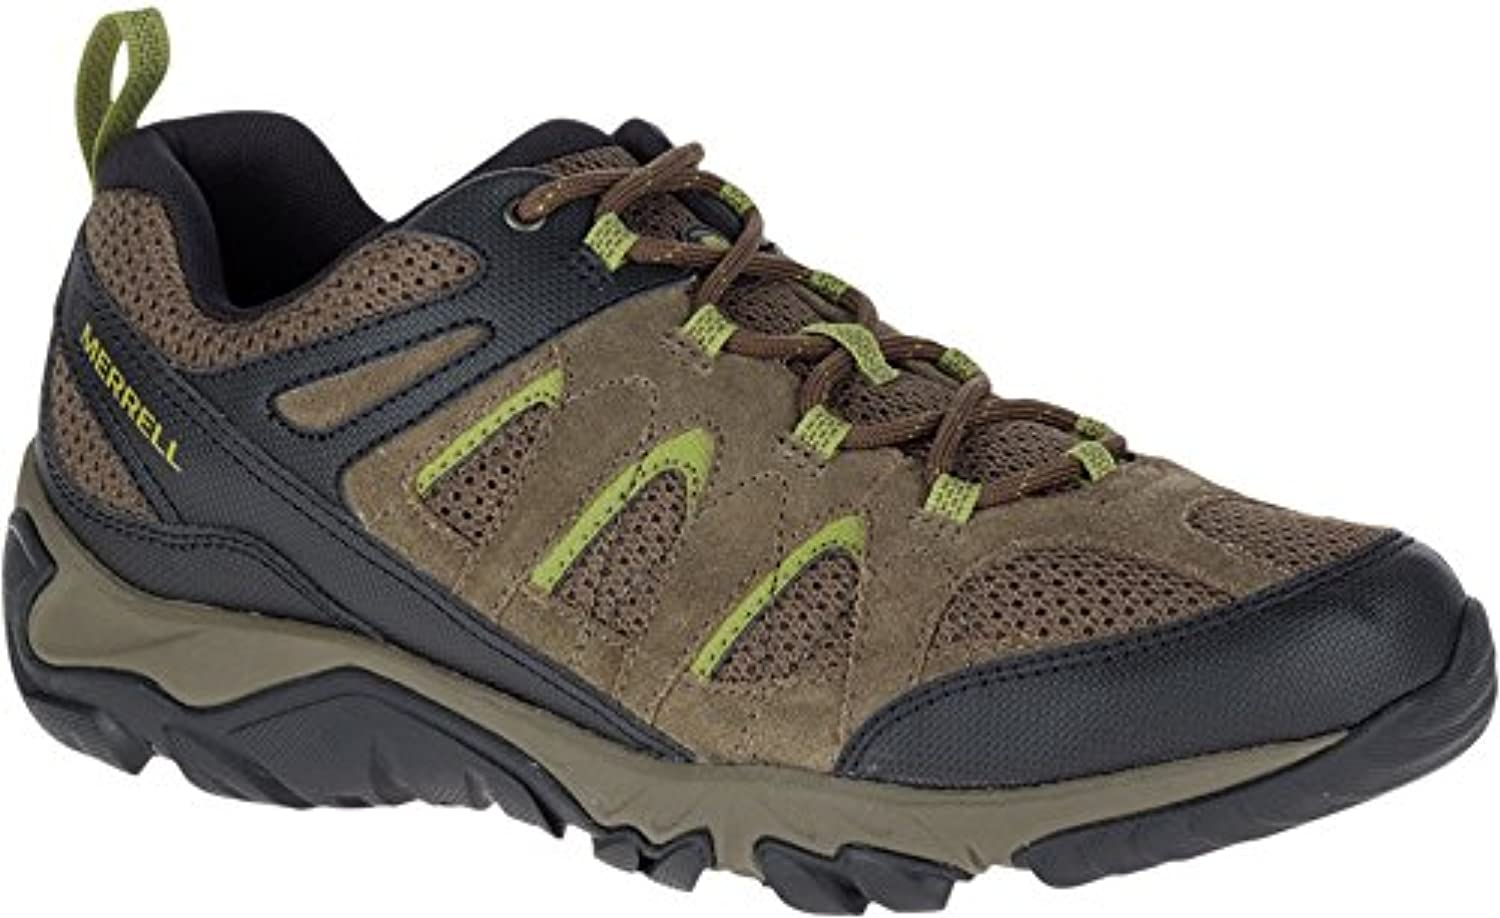 Merrell Men's Outmost Vent Hiking Shoe